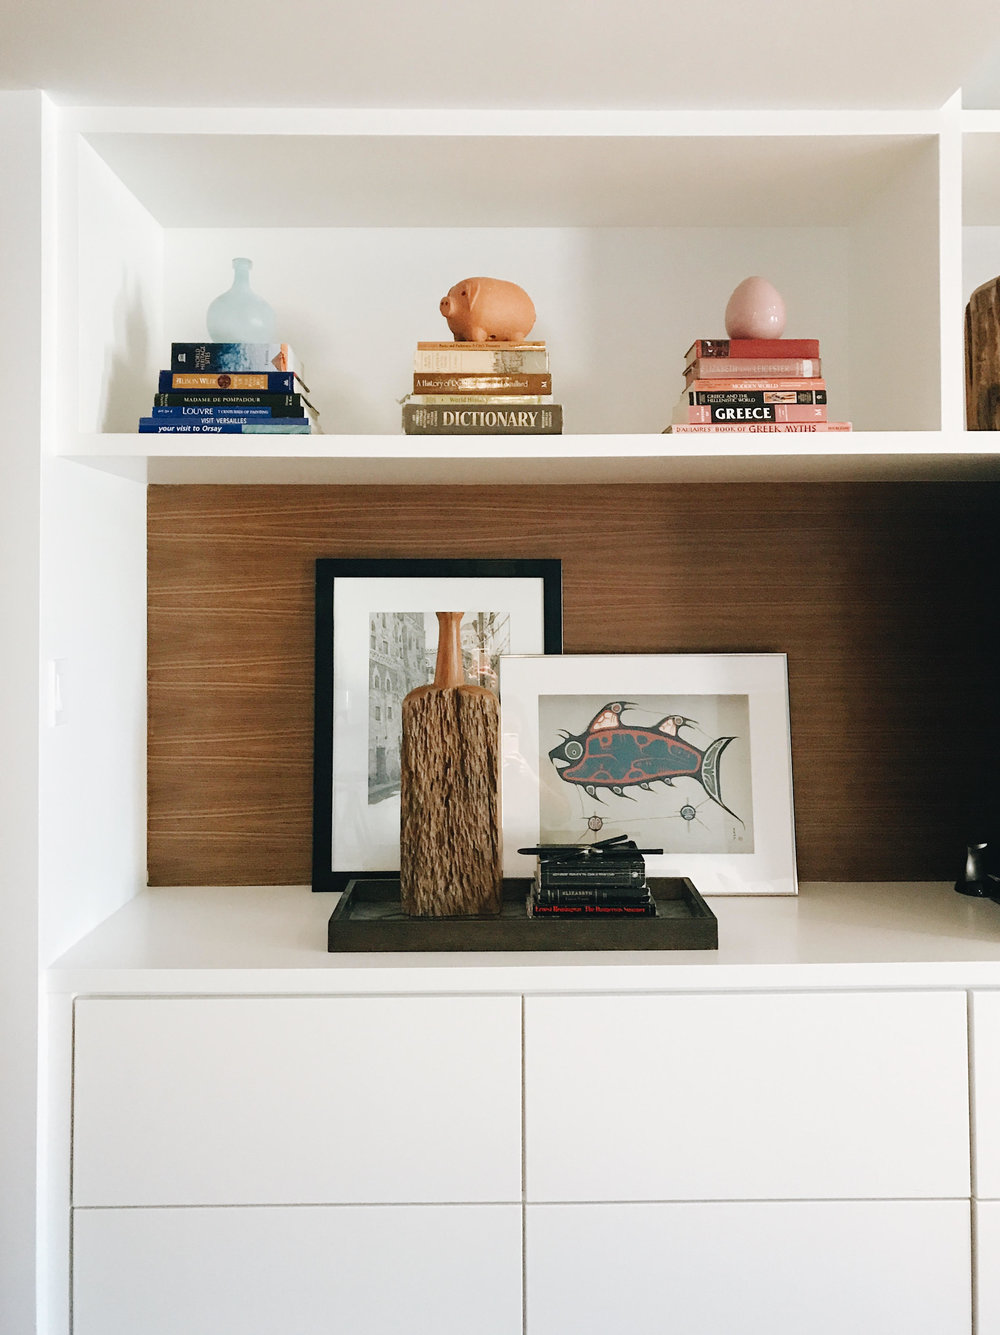 Bookshelf *after*, Nyla Free Designs Inc., Calgary Interior Designer, Before & After